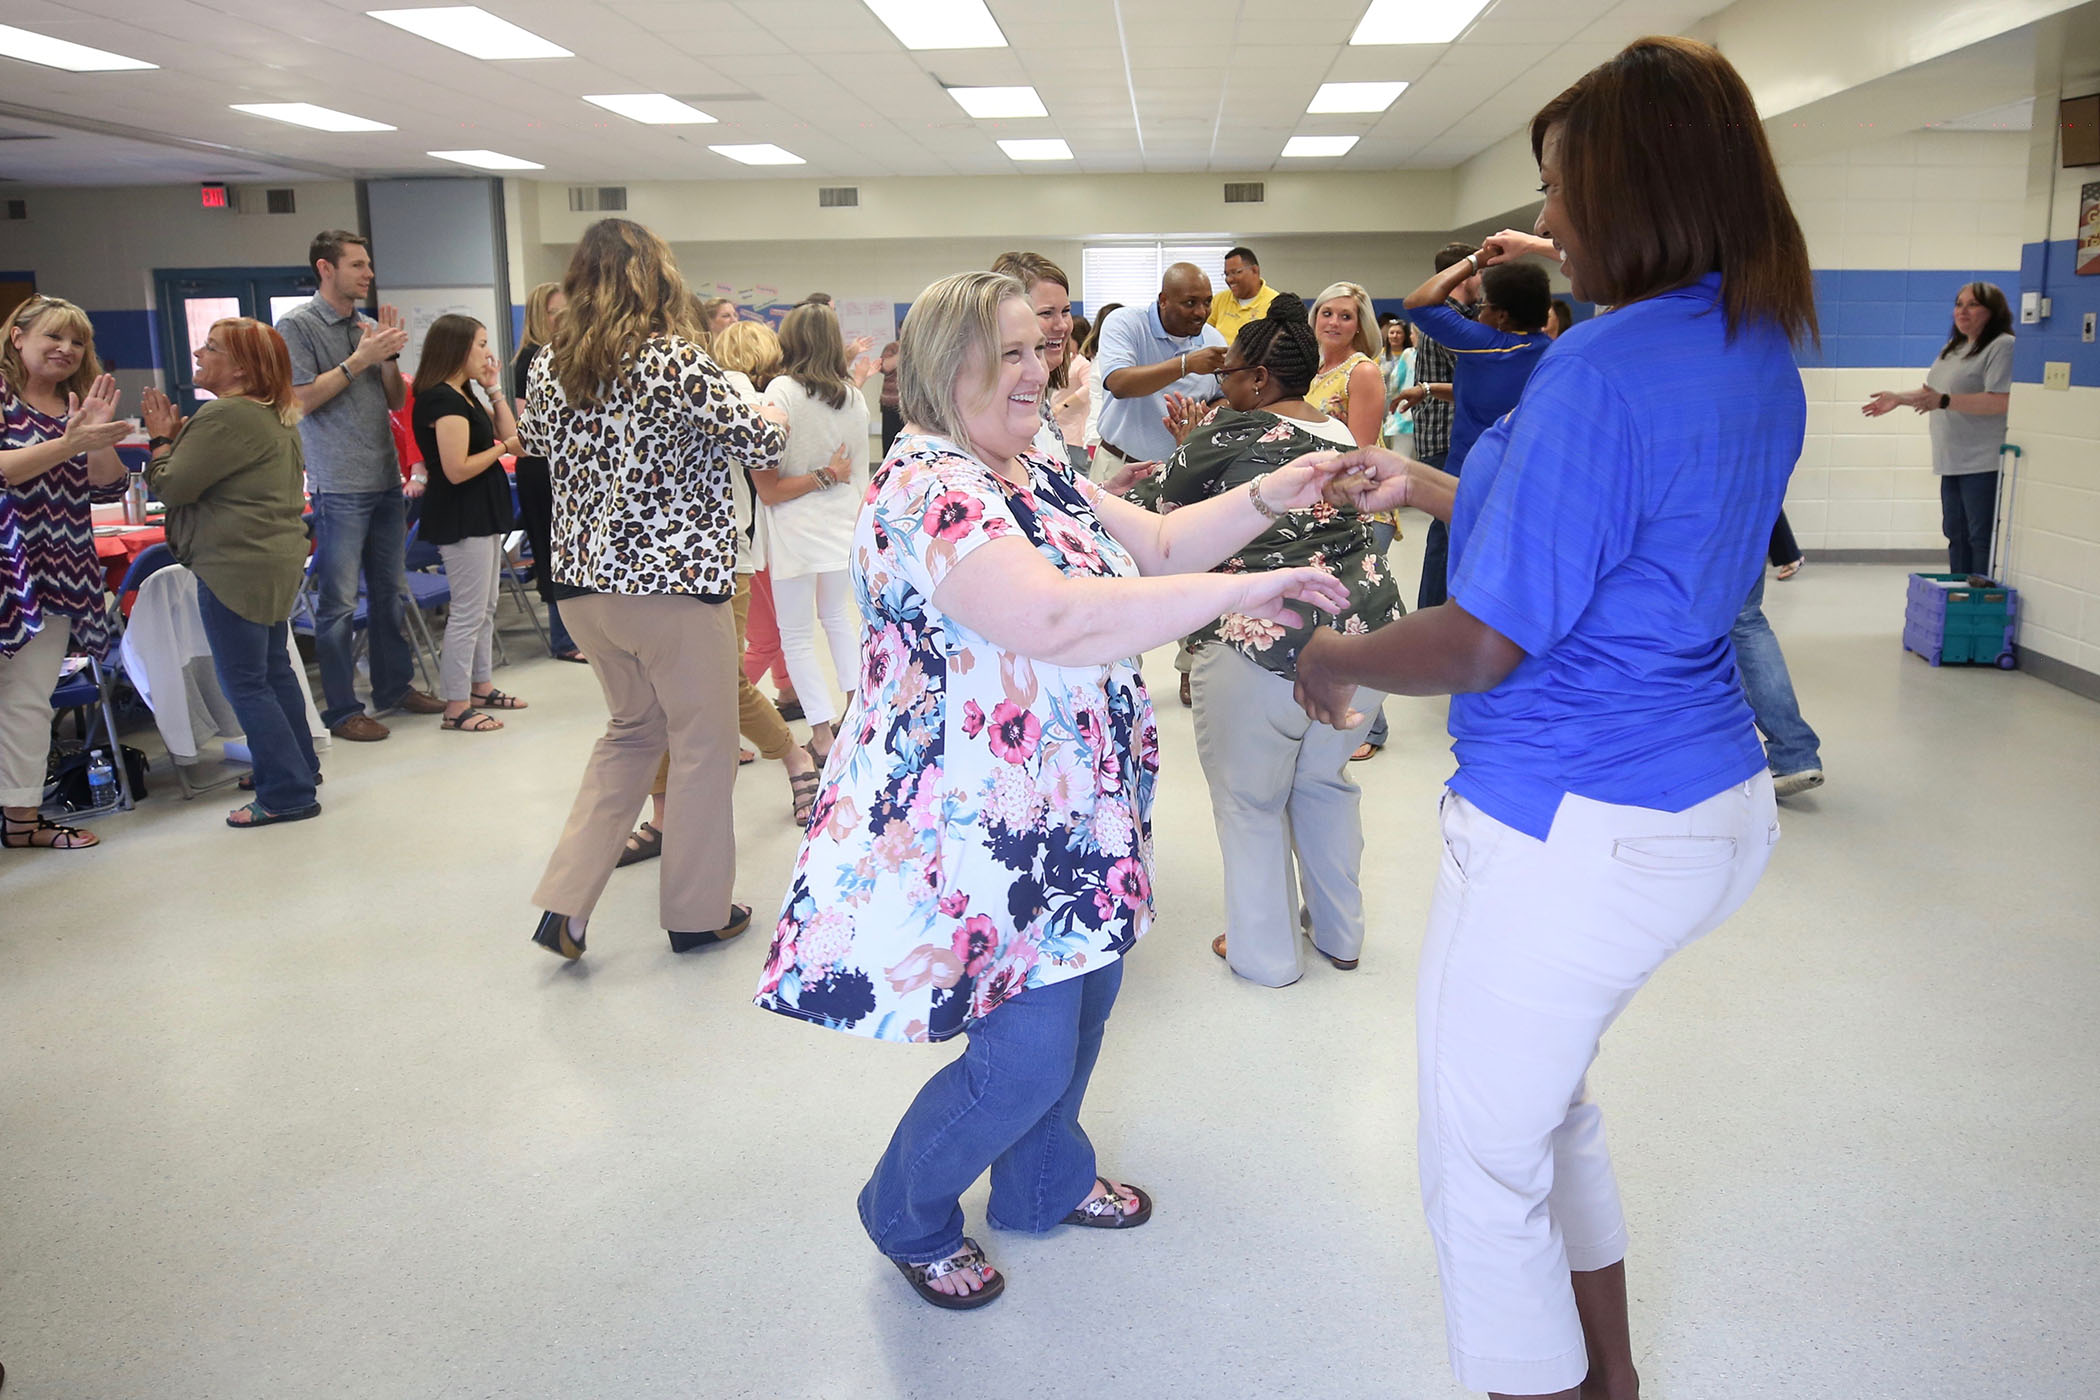 Quitman School District employees dance together at a Leader in Me conference.